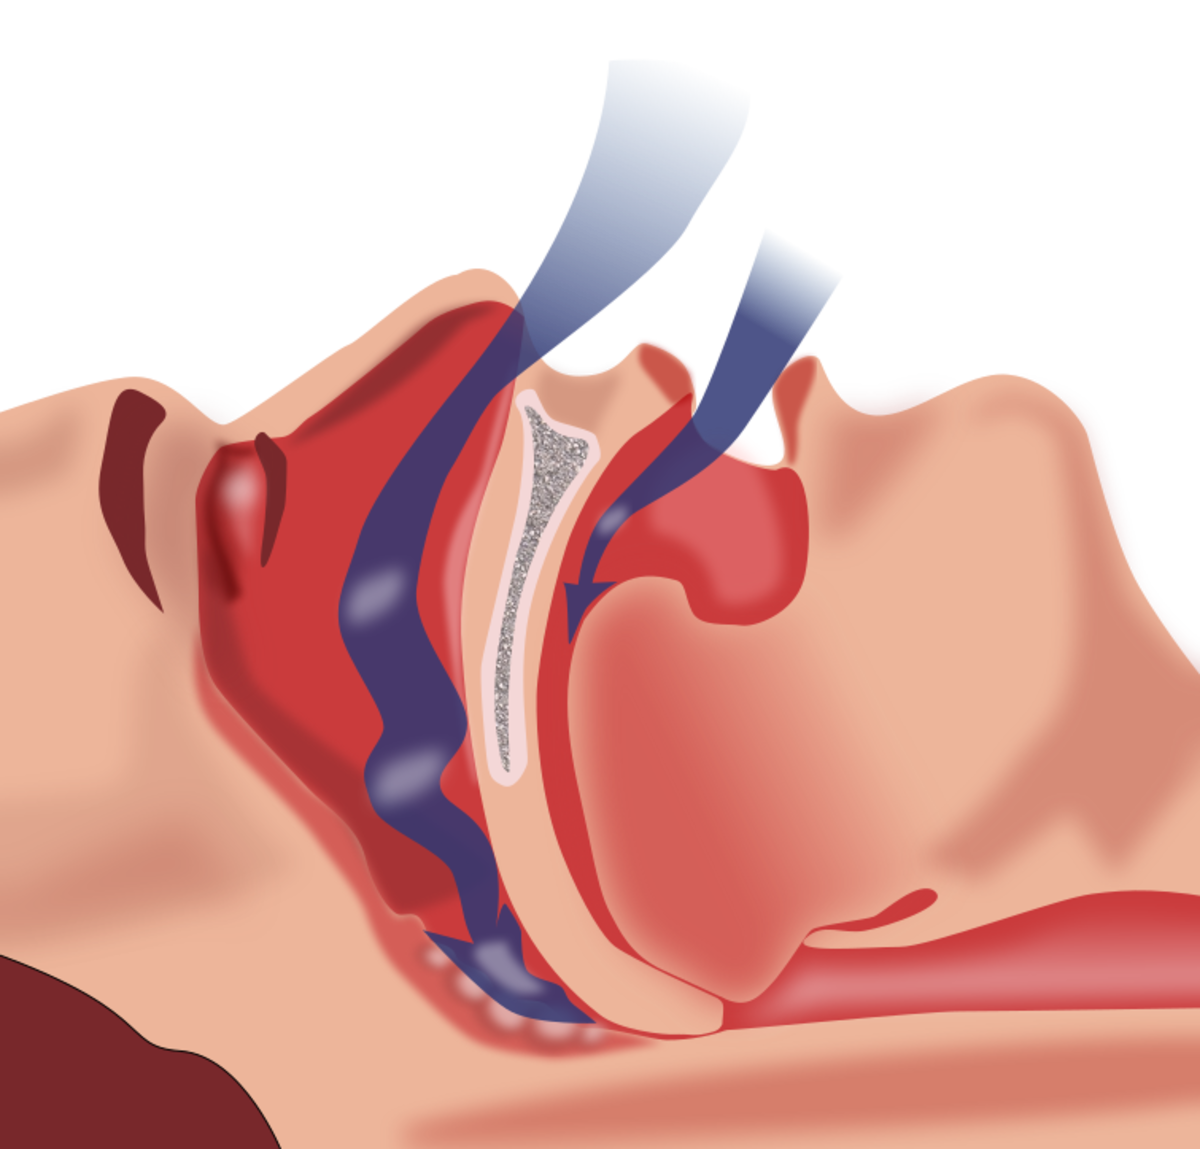 Sleep Apnea: Do You Have It? Causes, Symptoms, and Diagnosis